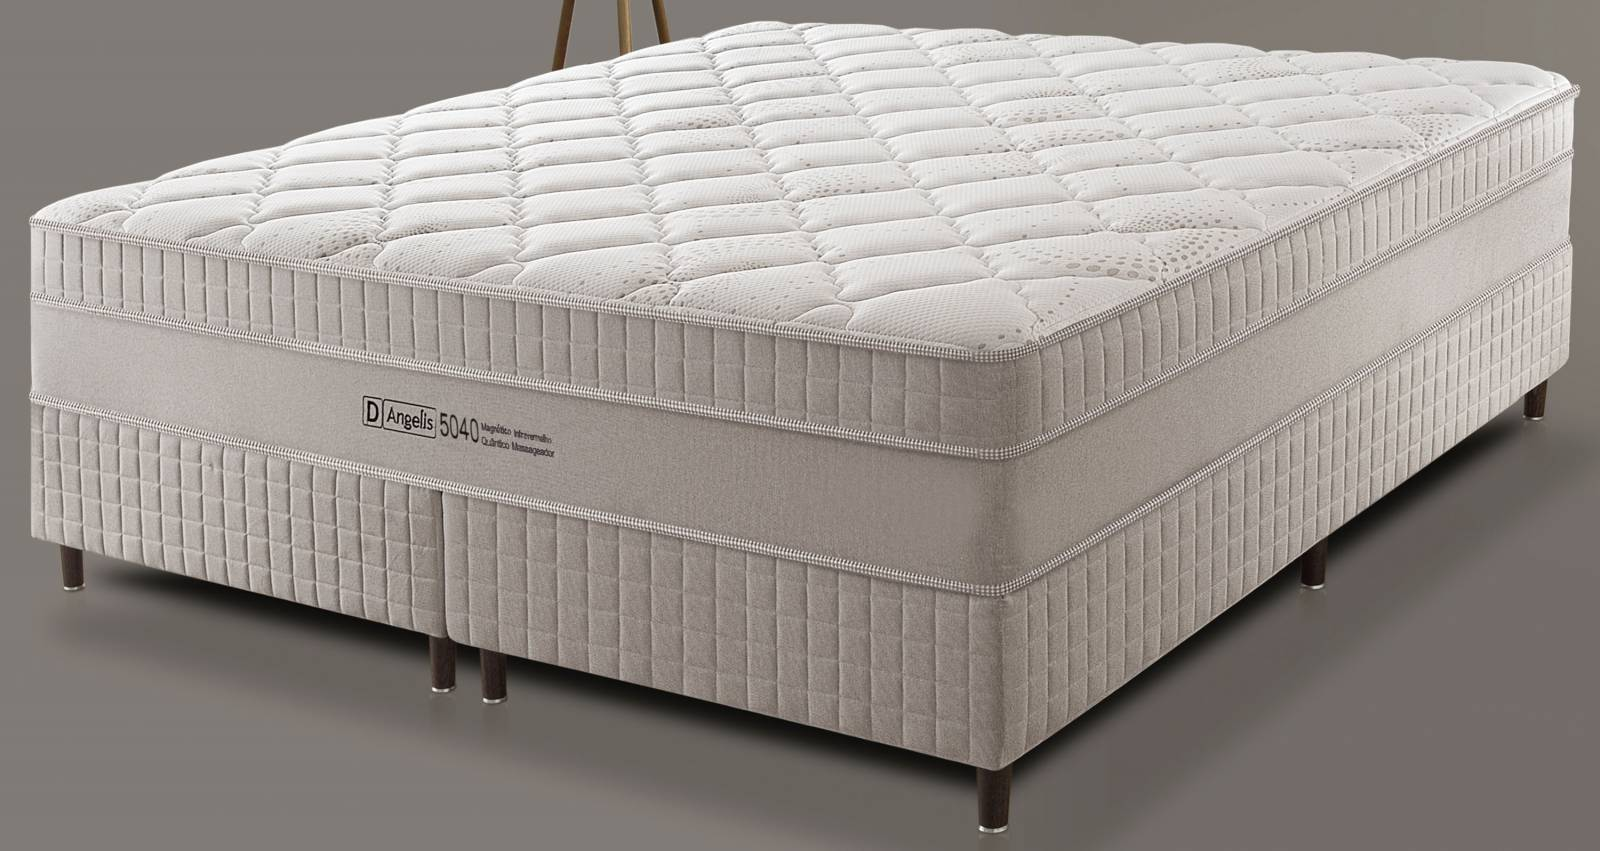 Conjunto Cama Box DG 5040 Magnético D'Angelis - All Home